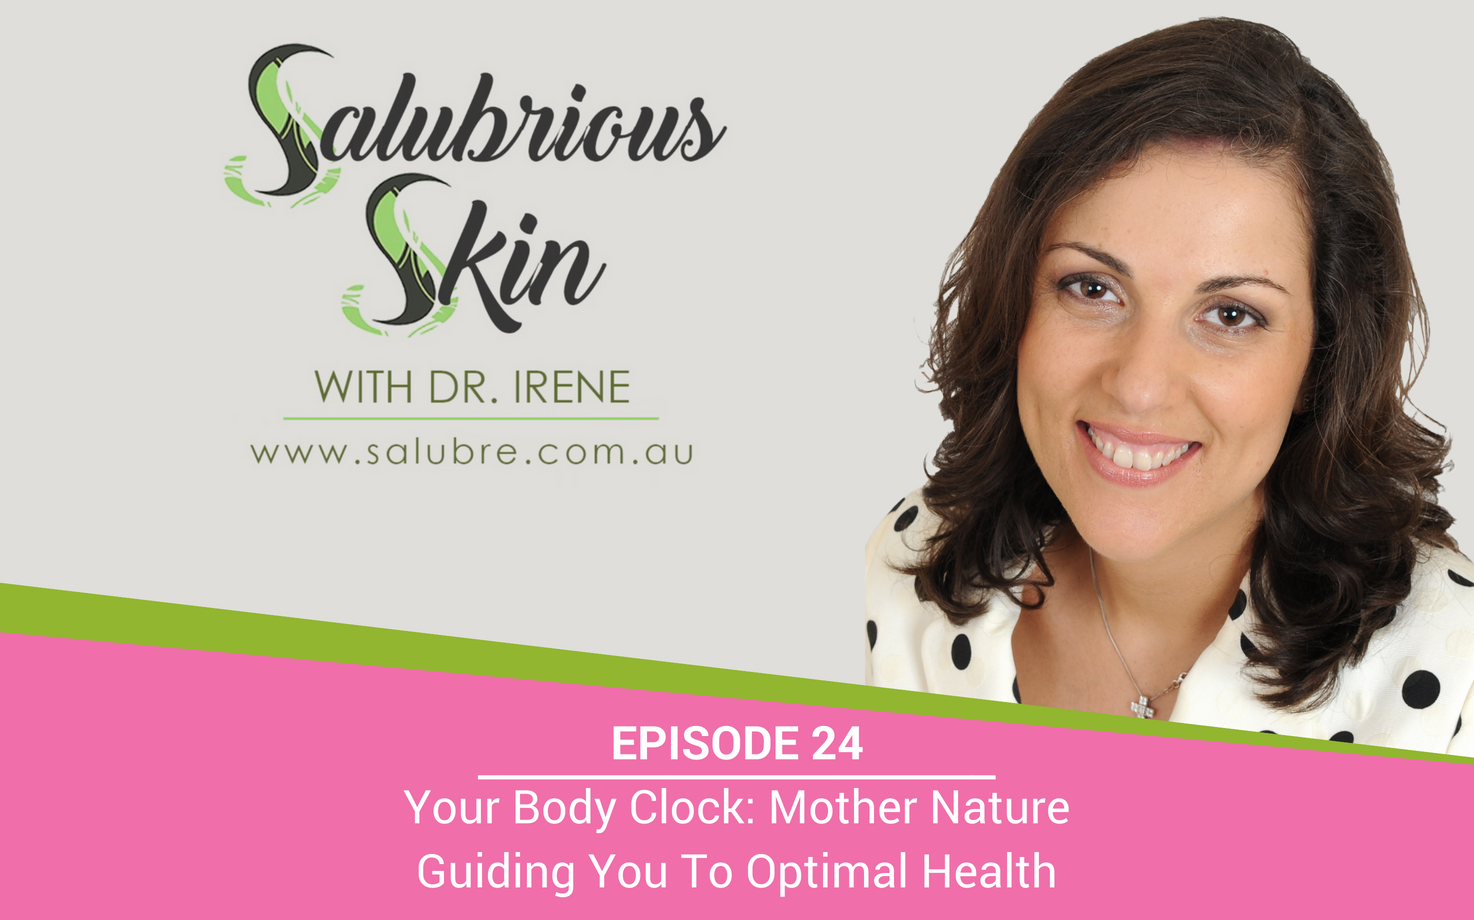 Episode 24: Your Body Clock - Mother Nature Guiding You To Optimal Health